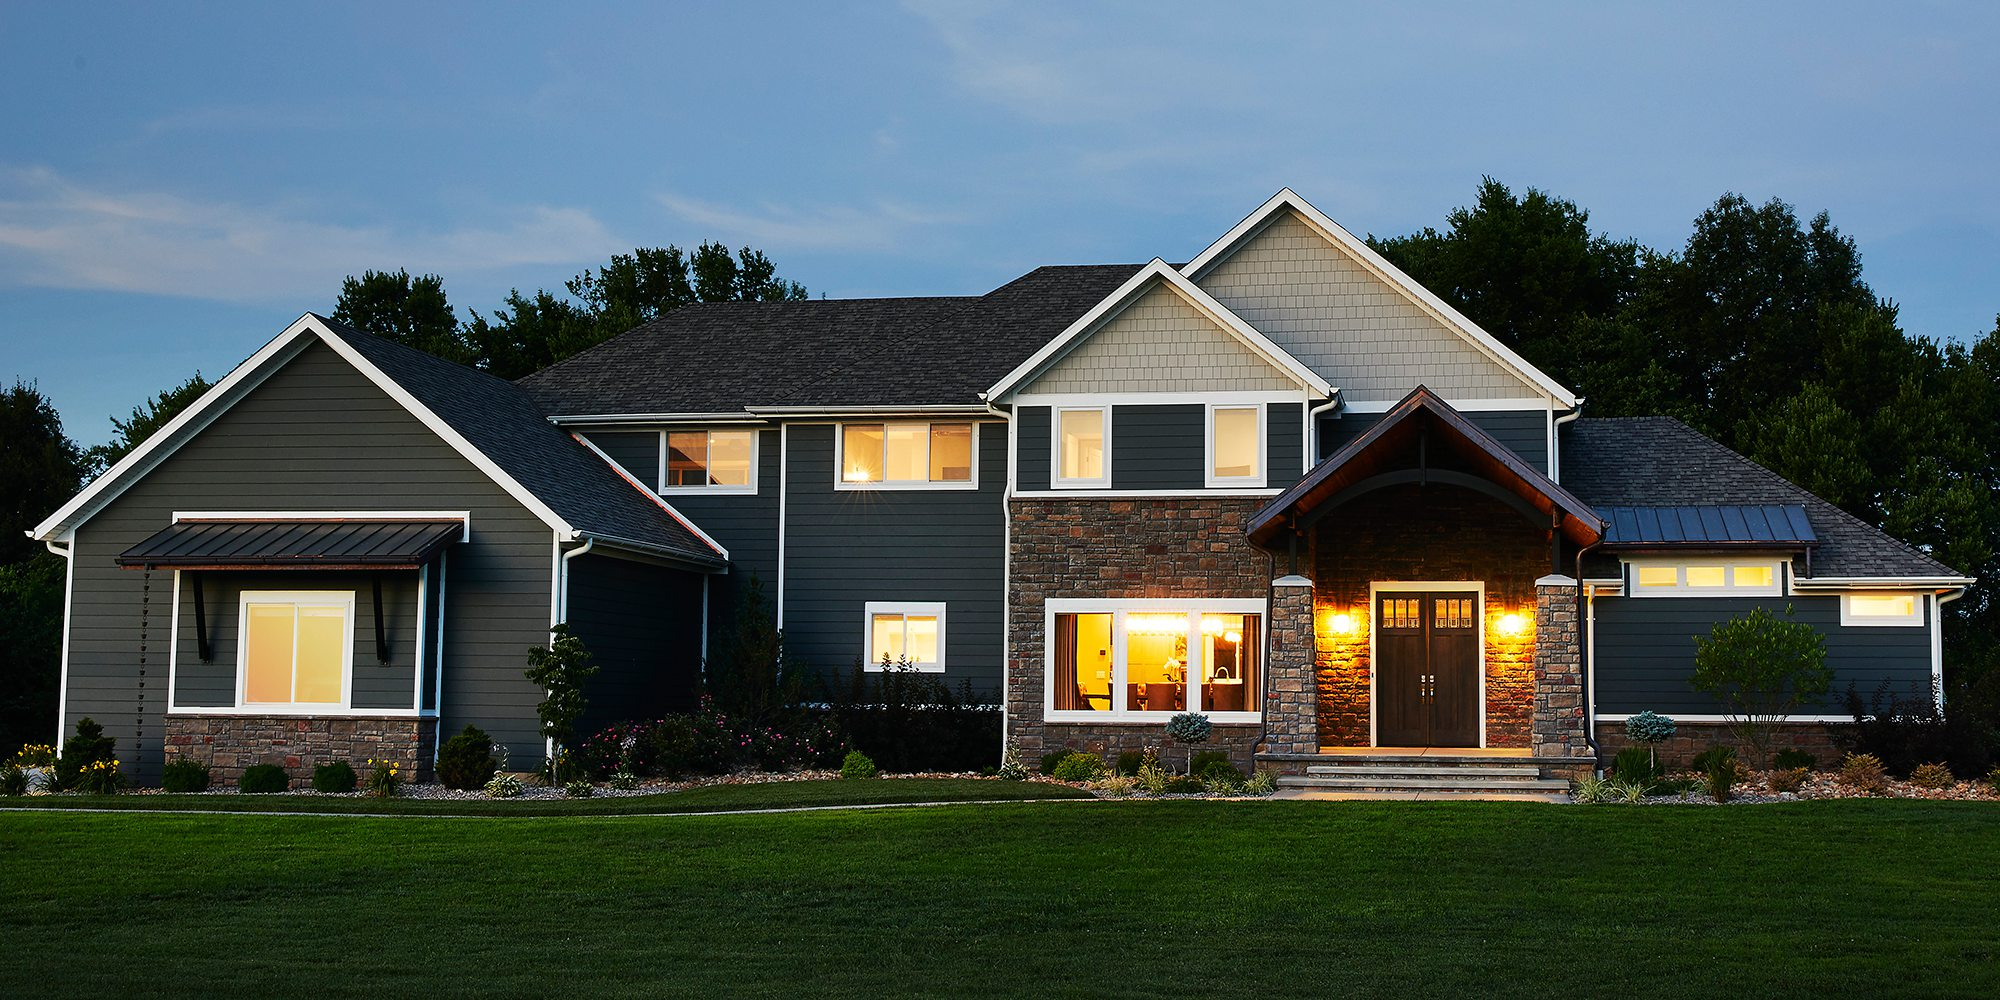 $500,000-$750,000 Homes of the Year Winner Timeless American Home Exterior